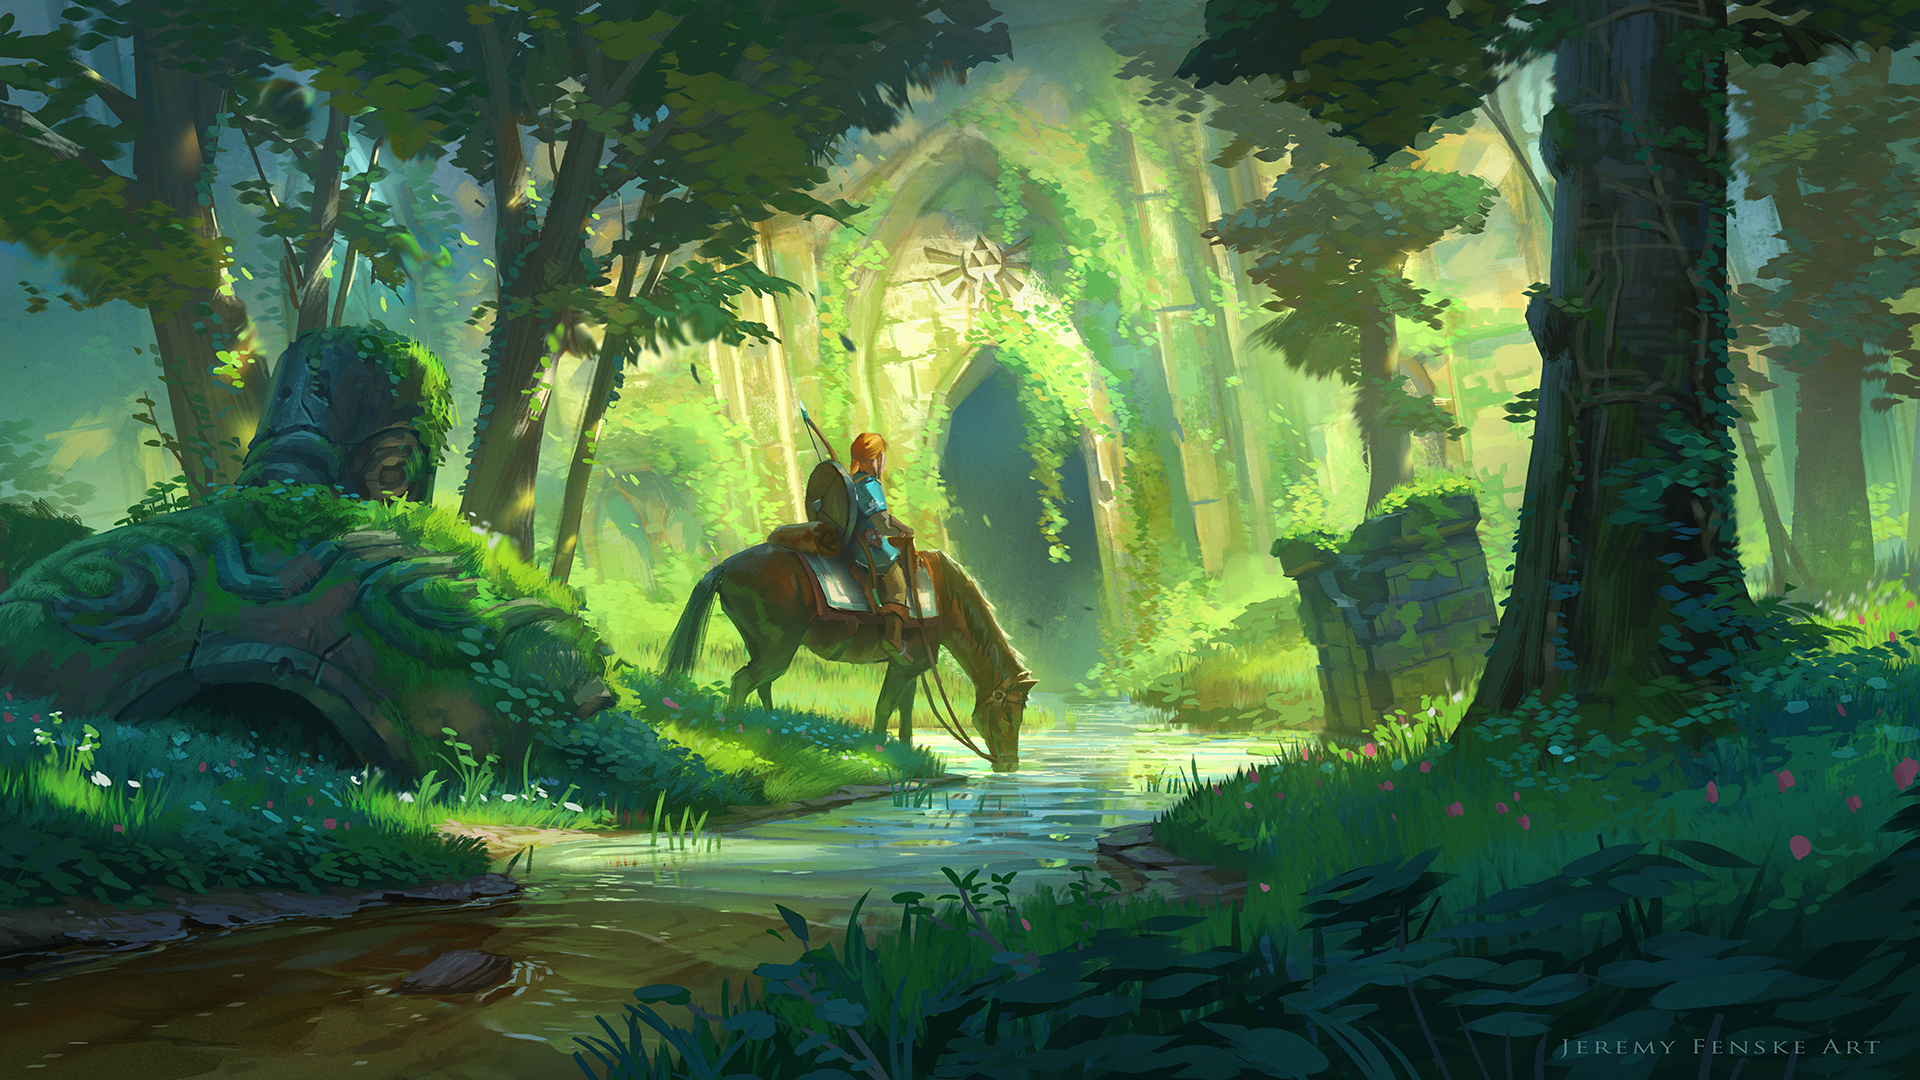 Breath Of The Wild Desktop Wallpaper: The Legend Of Zelda: Breath Of The Wild HD Wallpaper